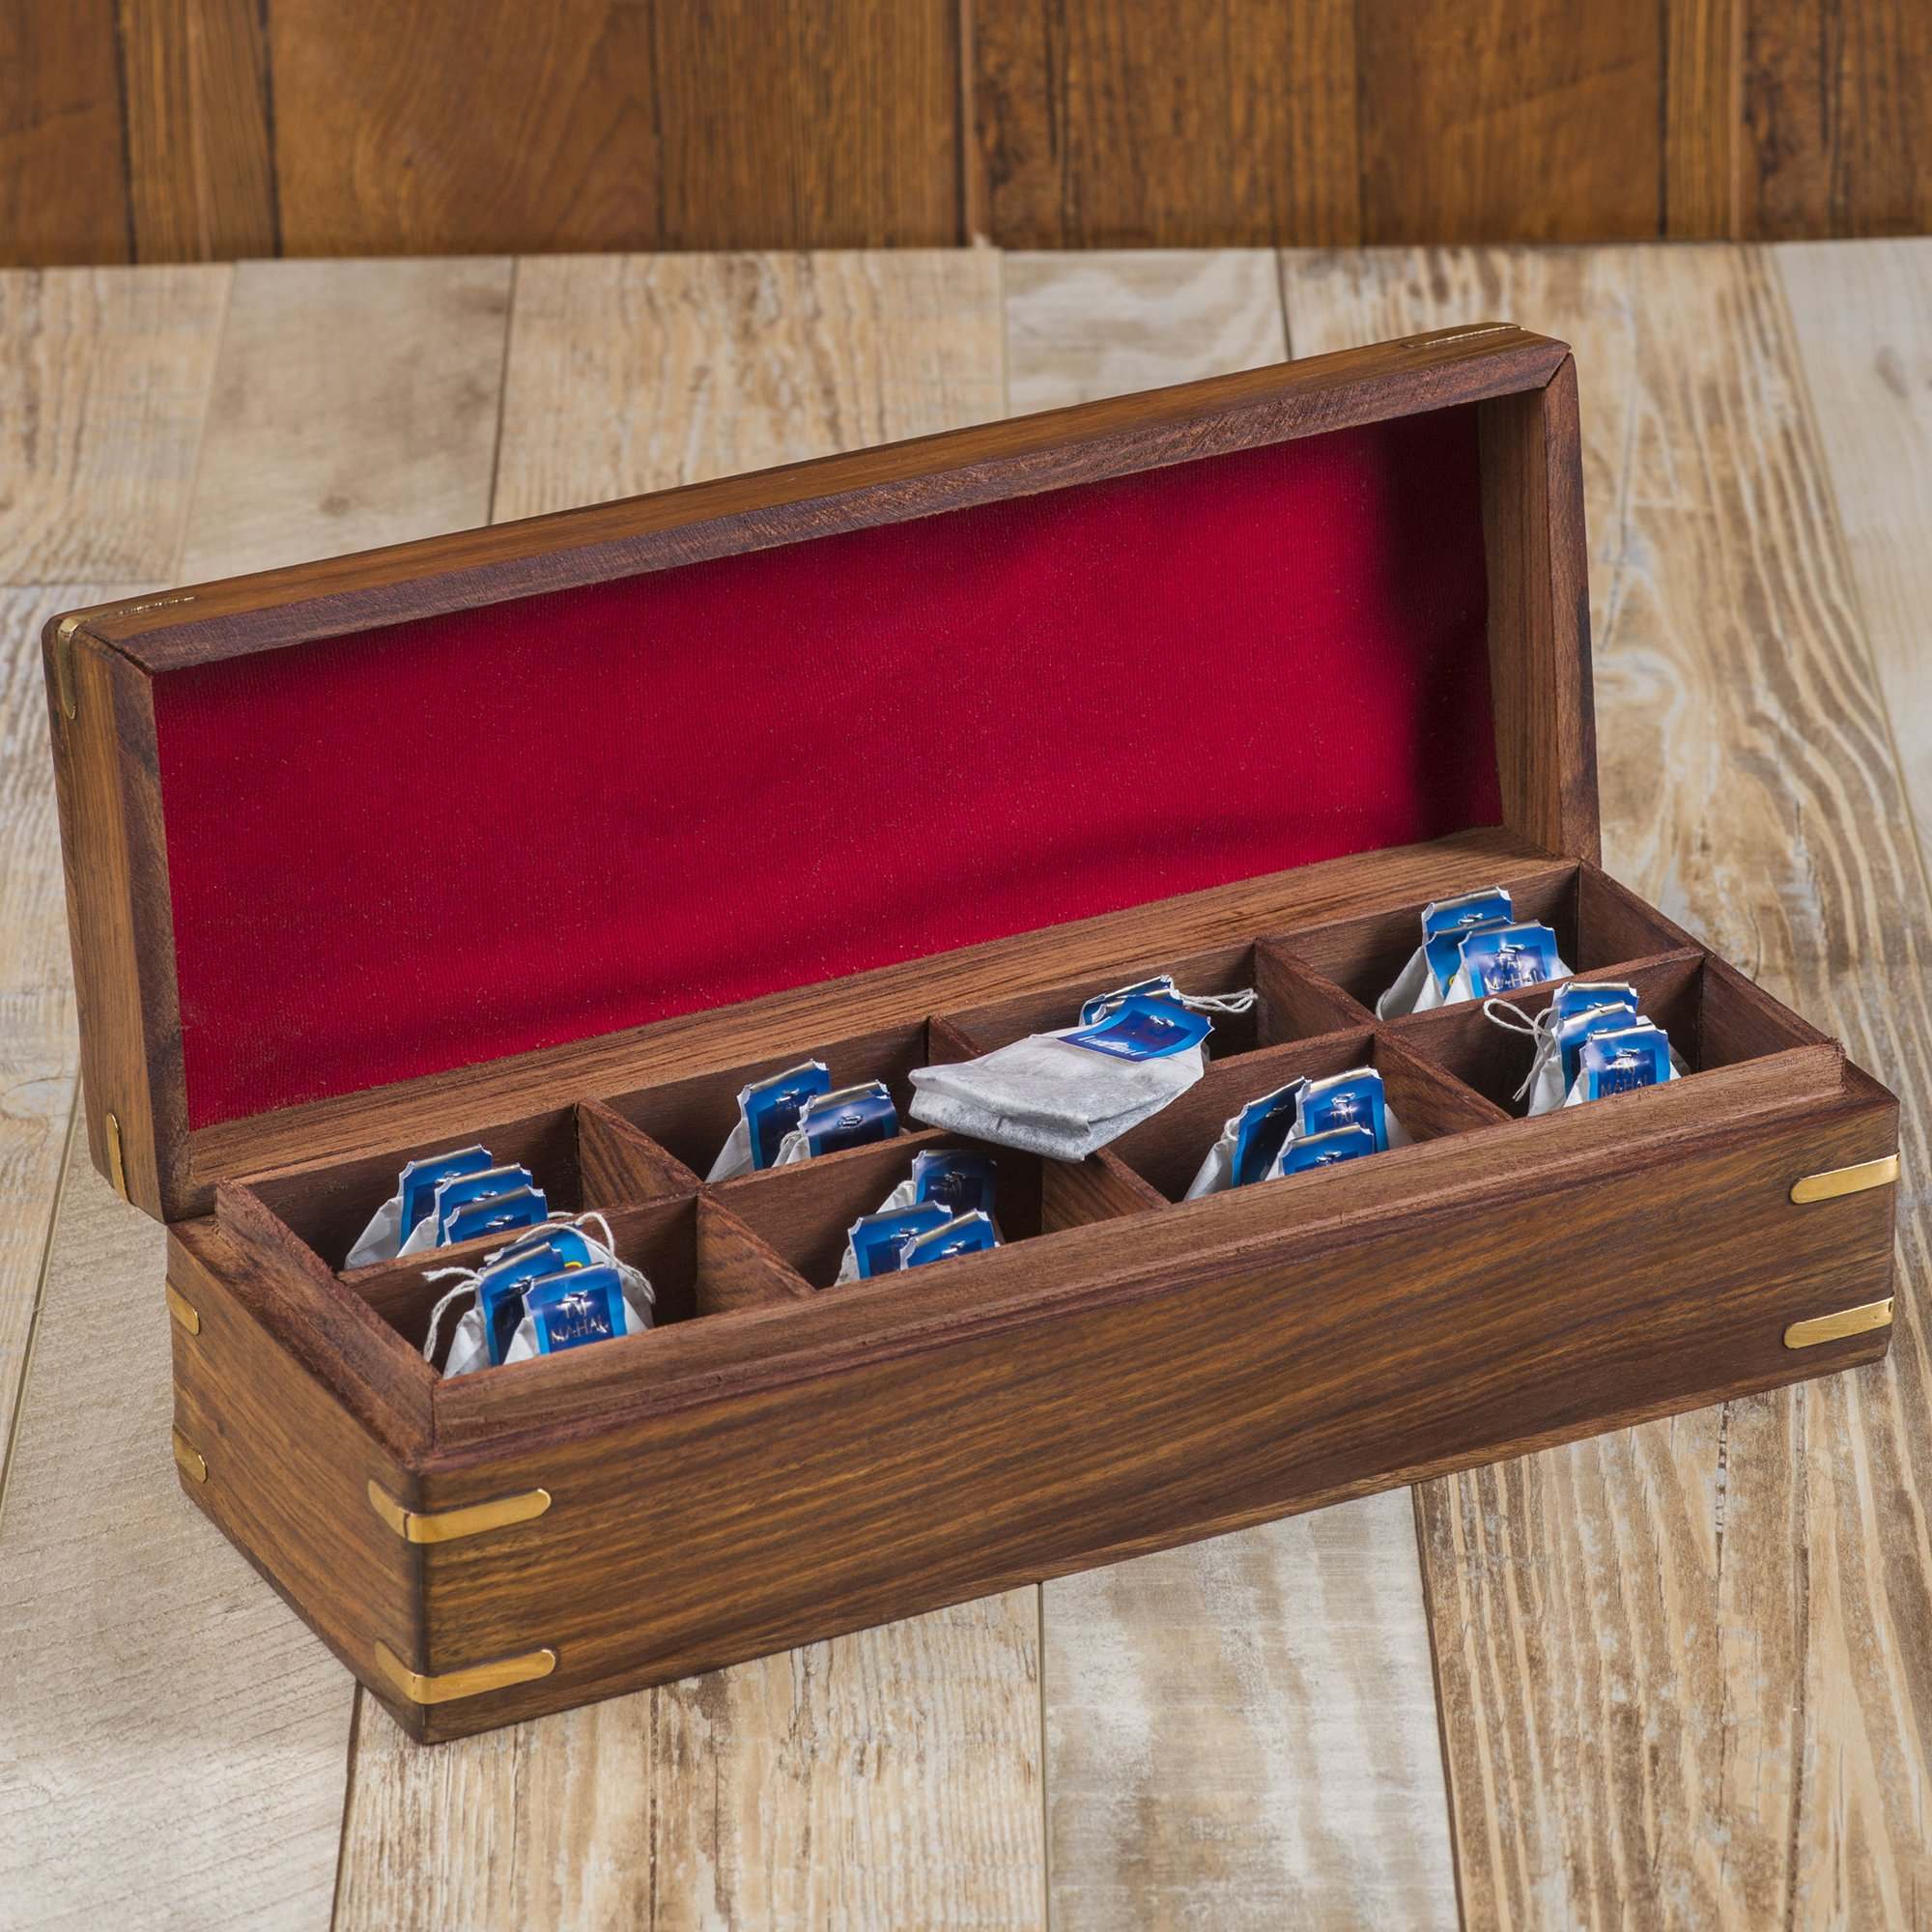 Rusticity Wooden Tea Box/Spice Organizer with Lid - 8 Slots | Handmade | (12x4.5 in)